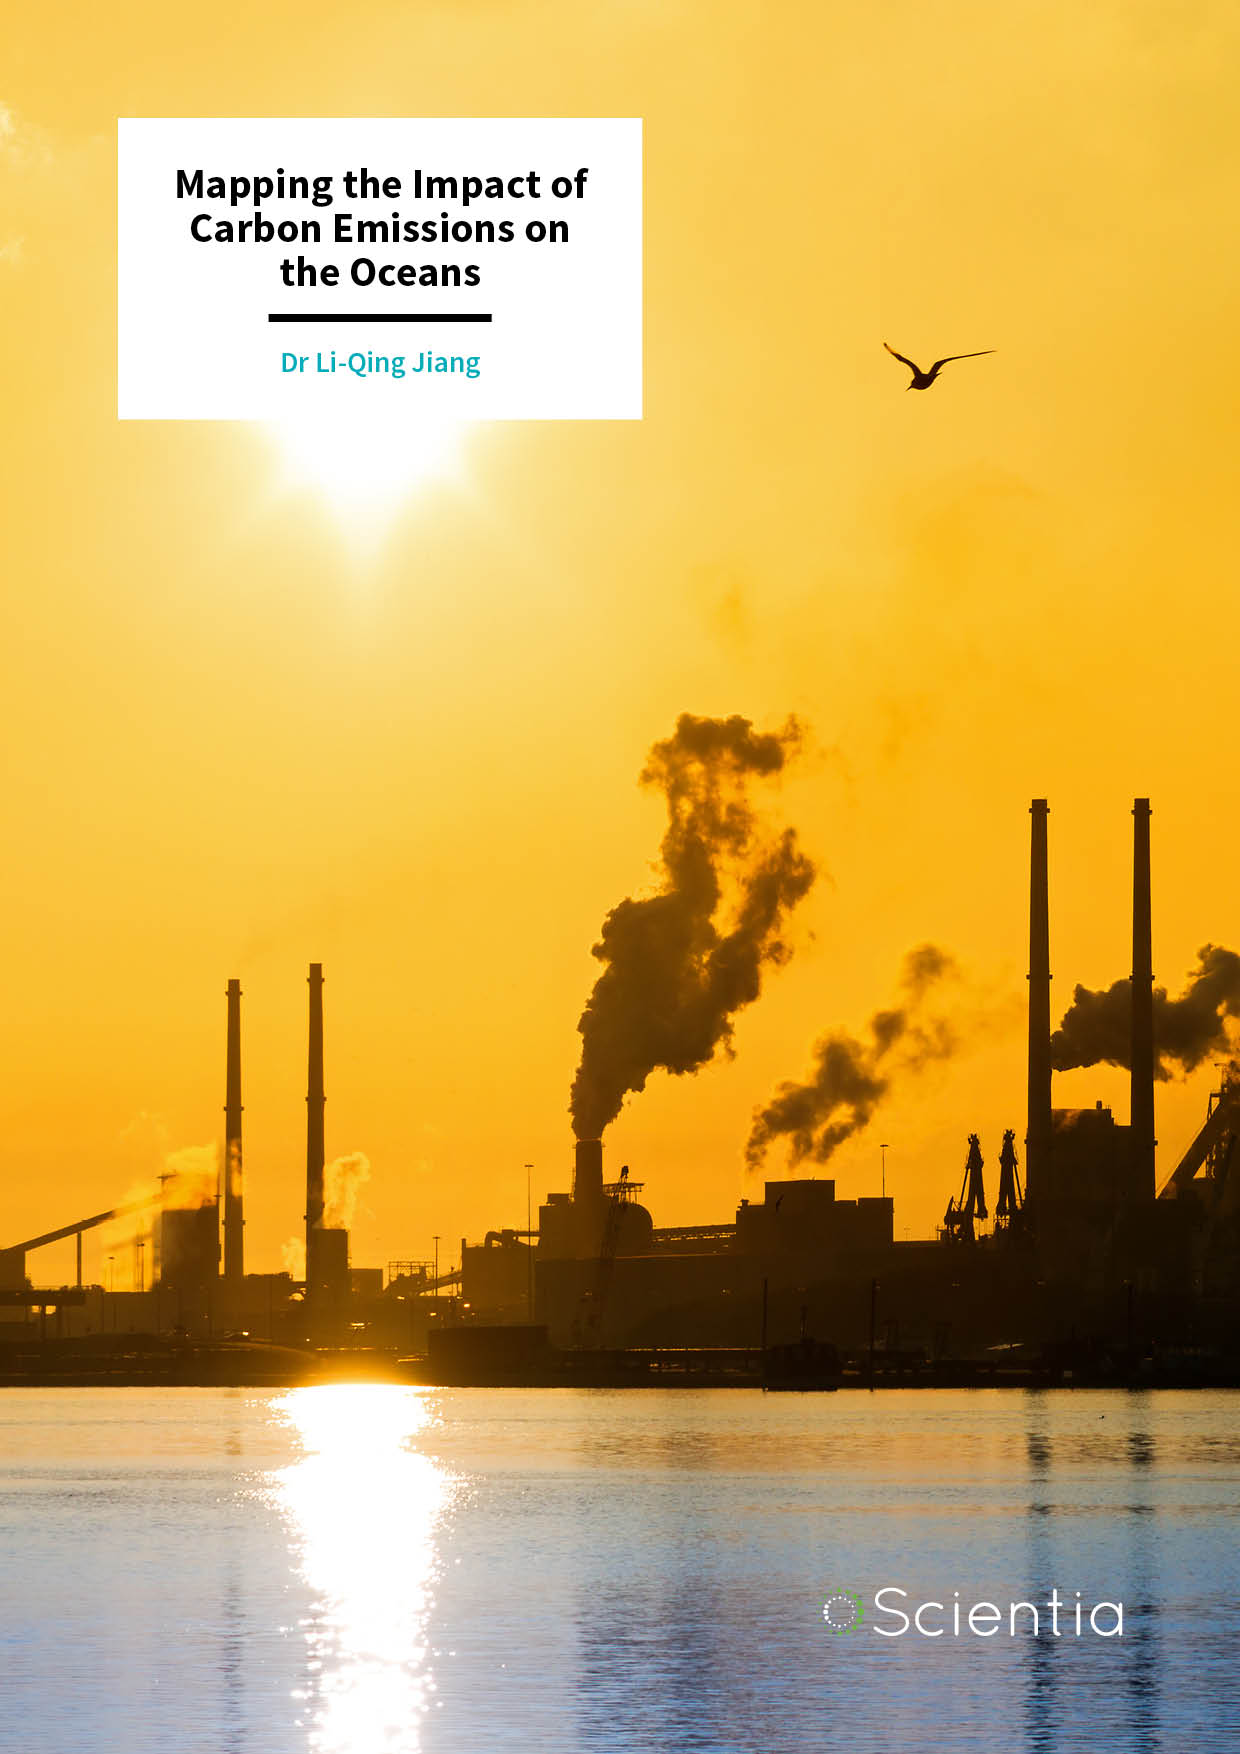 Dr Li-Qing Jiang – Mapping the Impact of Carbon Emissions on the Oceans